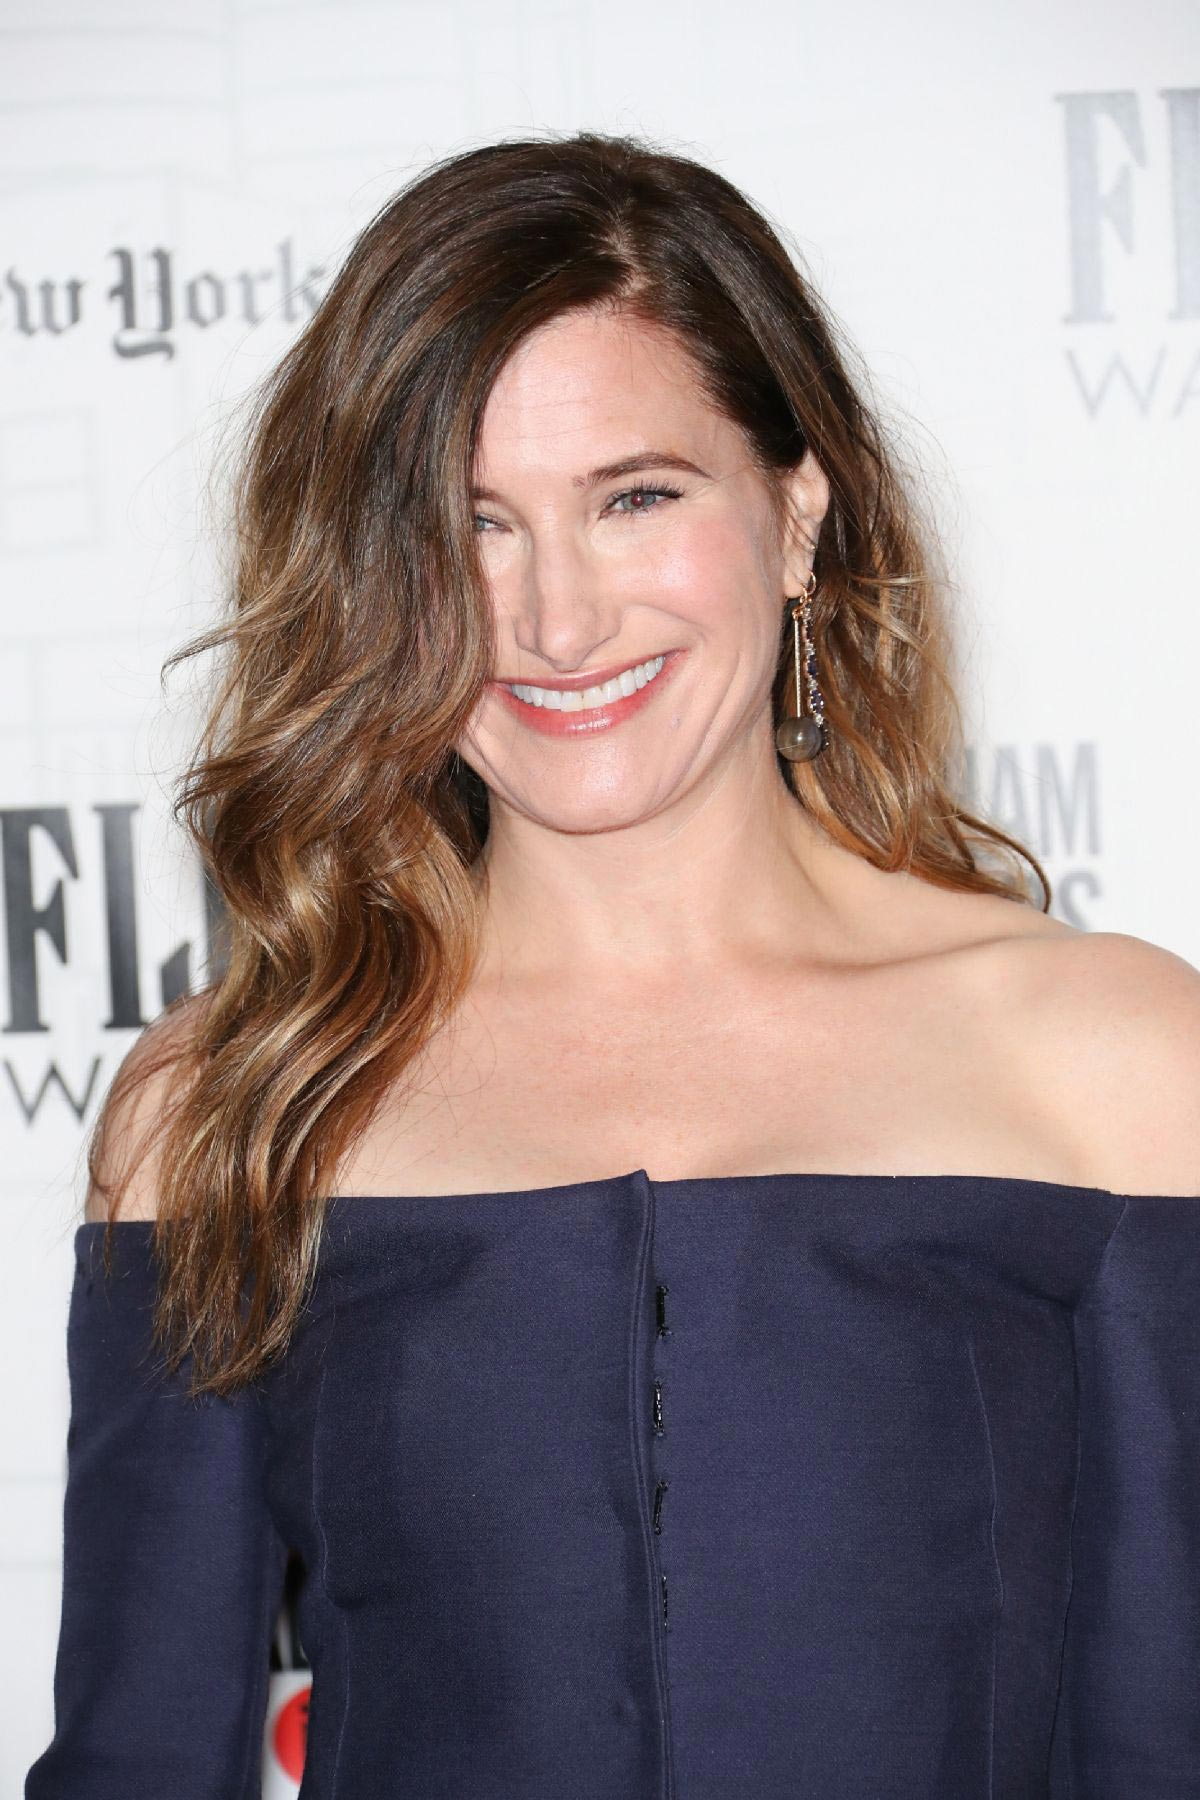 Kathryn Hahn at Gotham Independent Film Awards 2018 in New York 2018/11/26 1